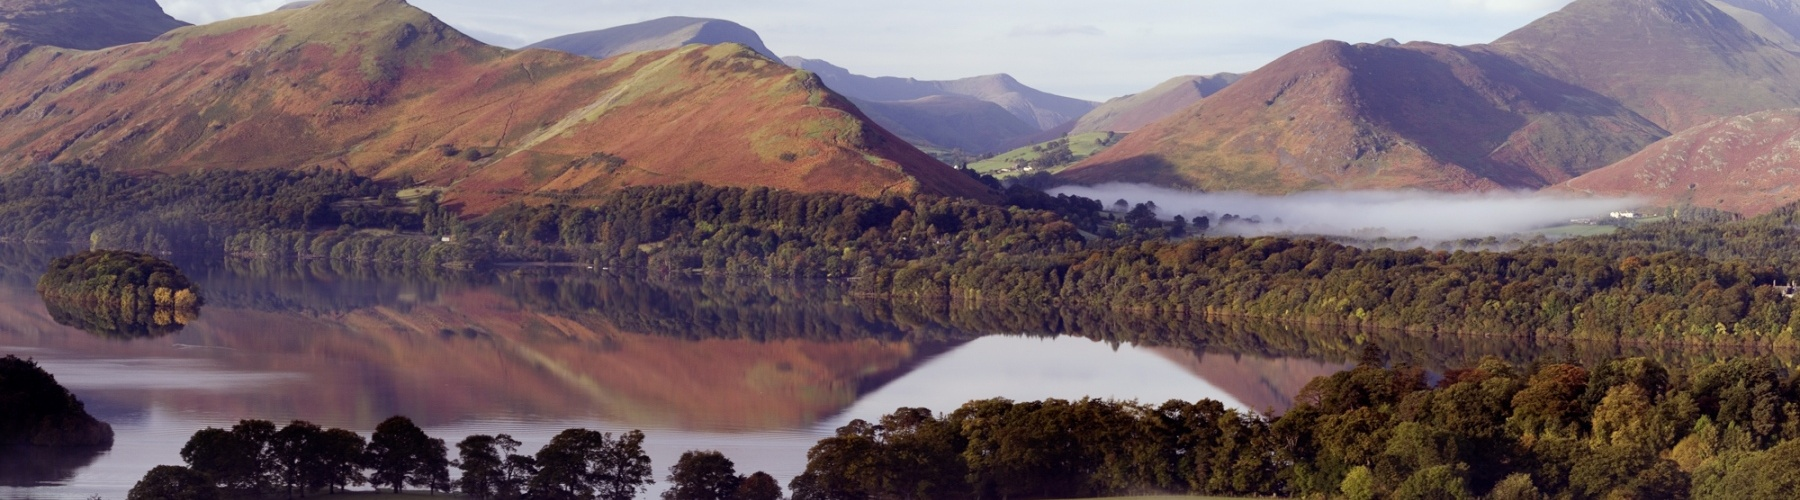 P0060-Catbells-from-castle-head